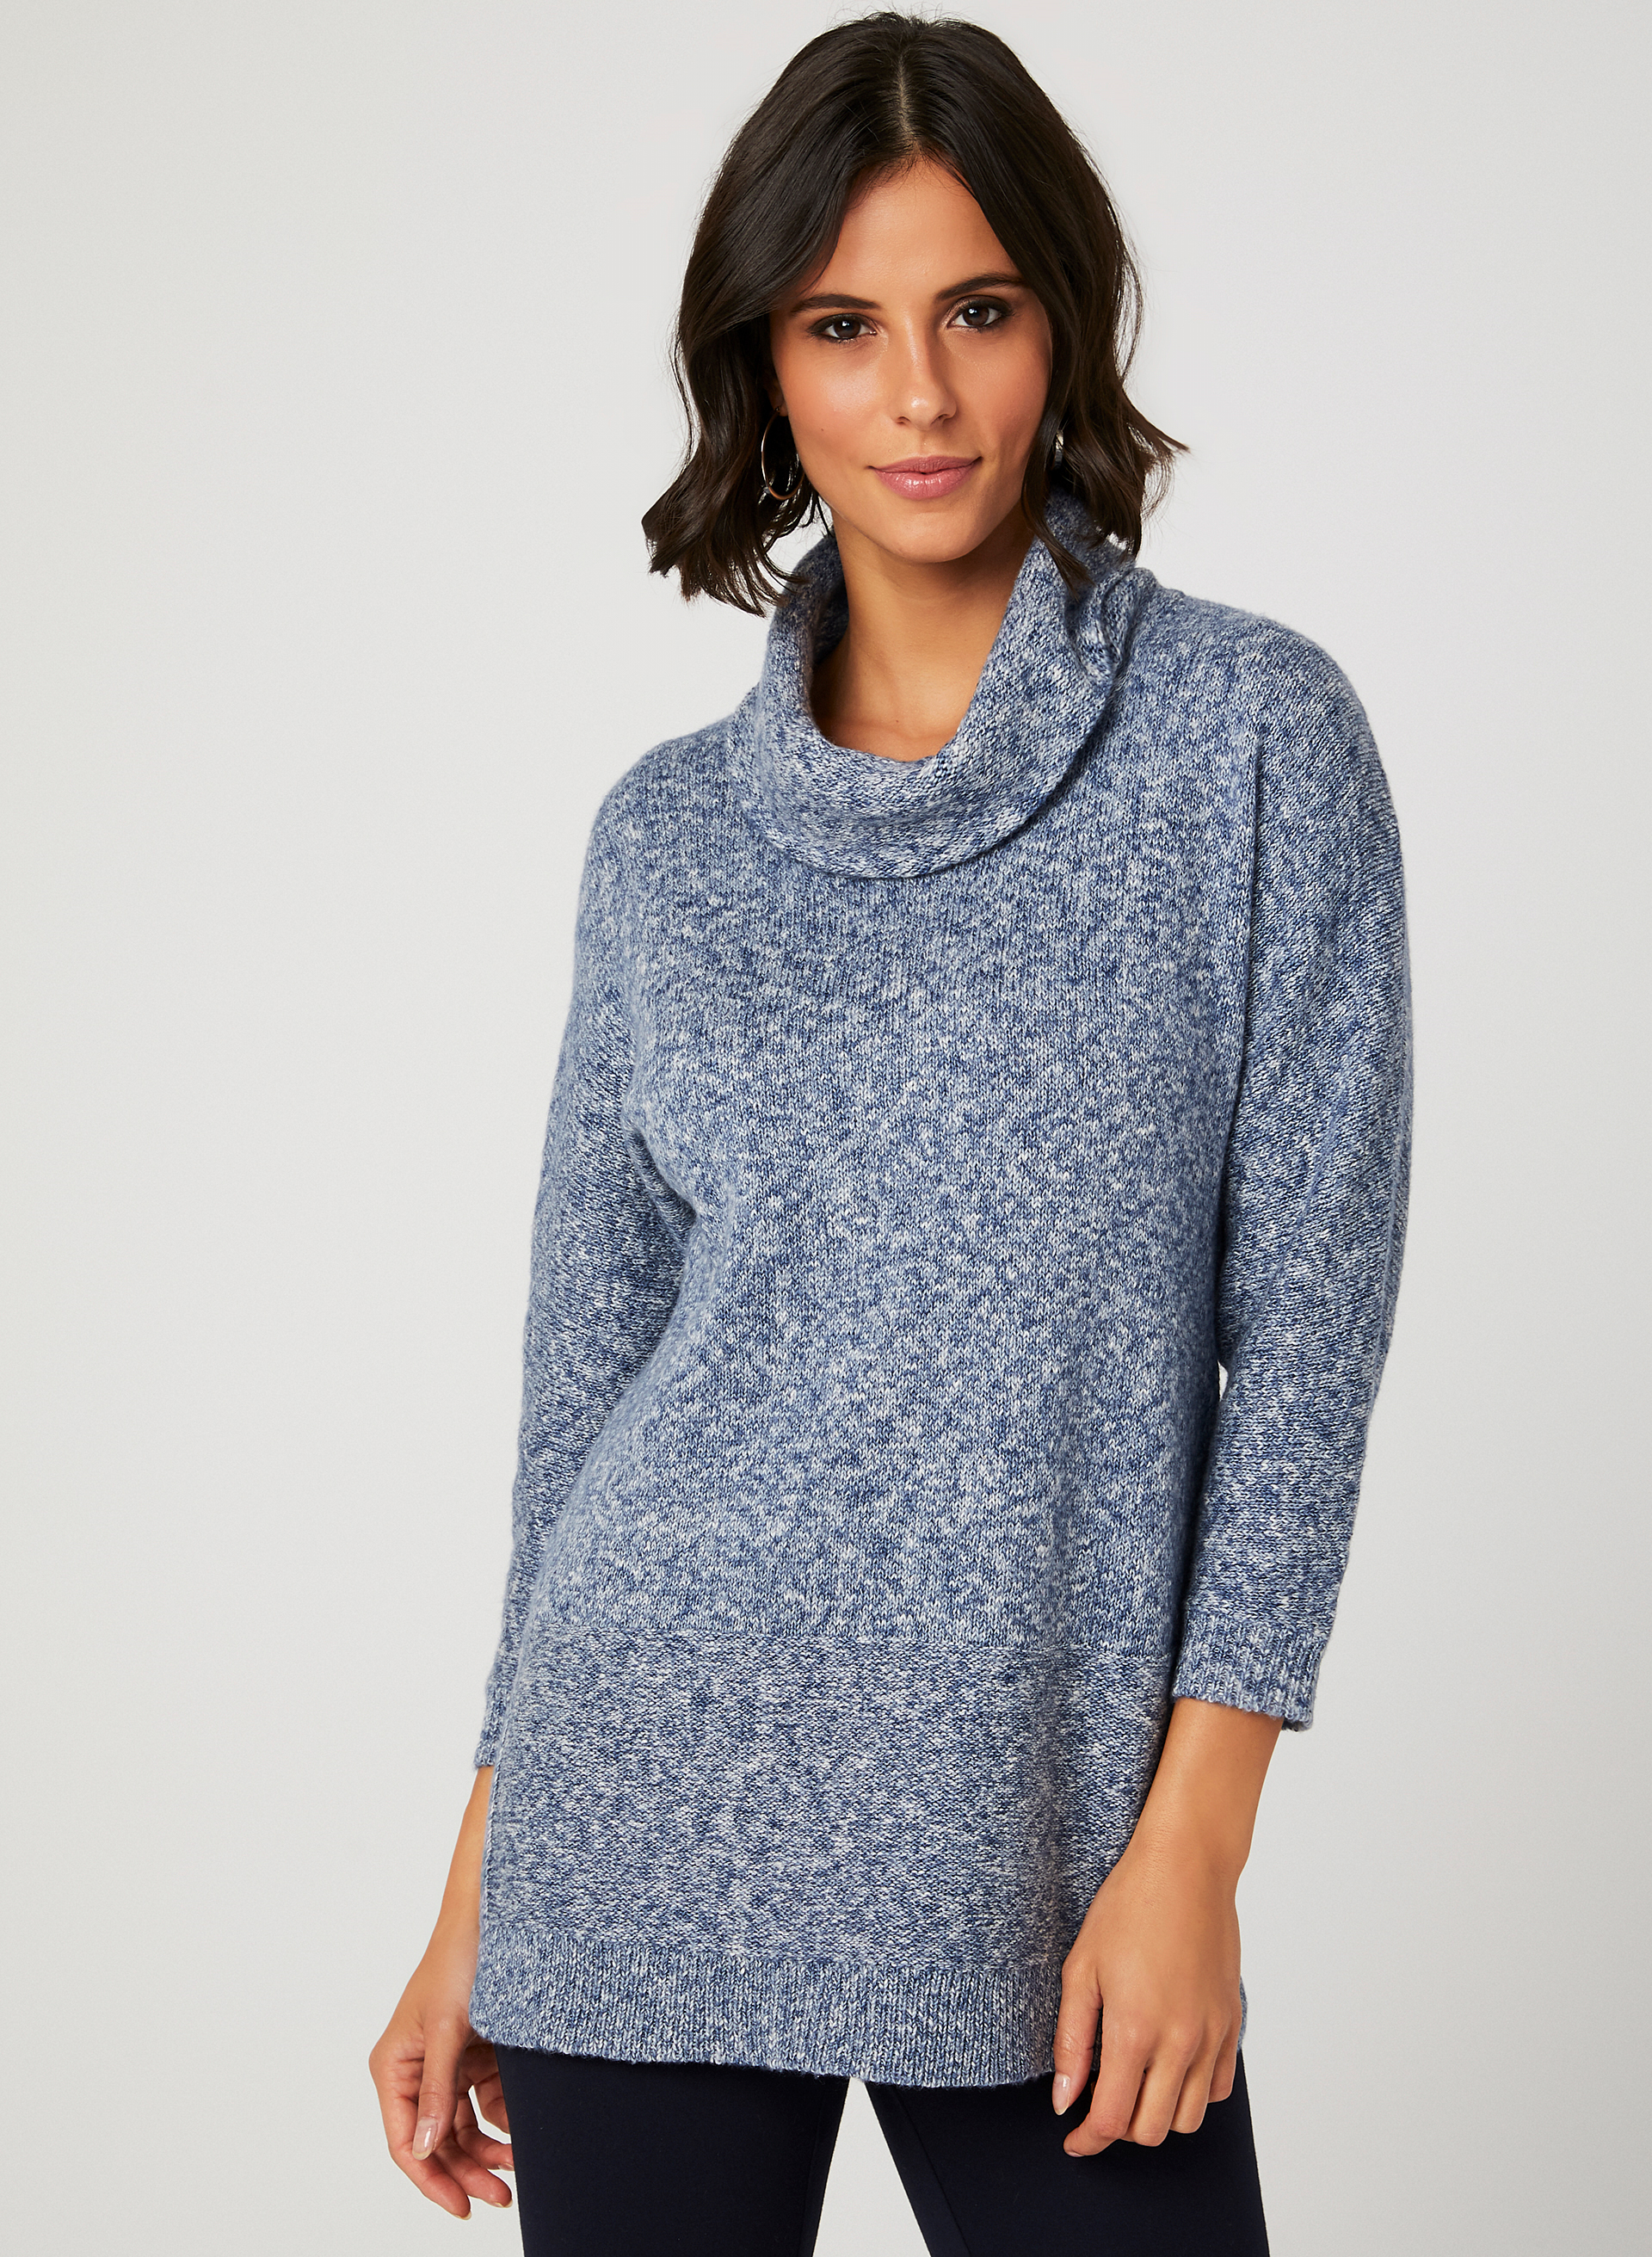 Heather Knit Cowl Neck Sweater Laura